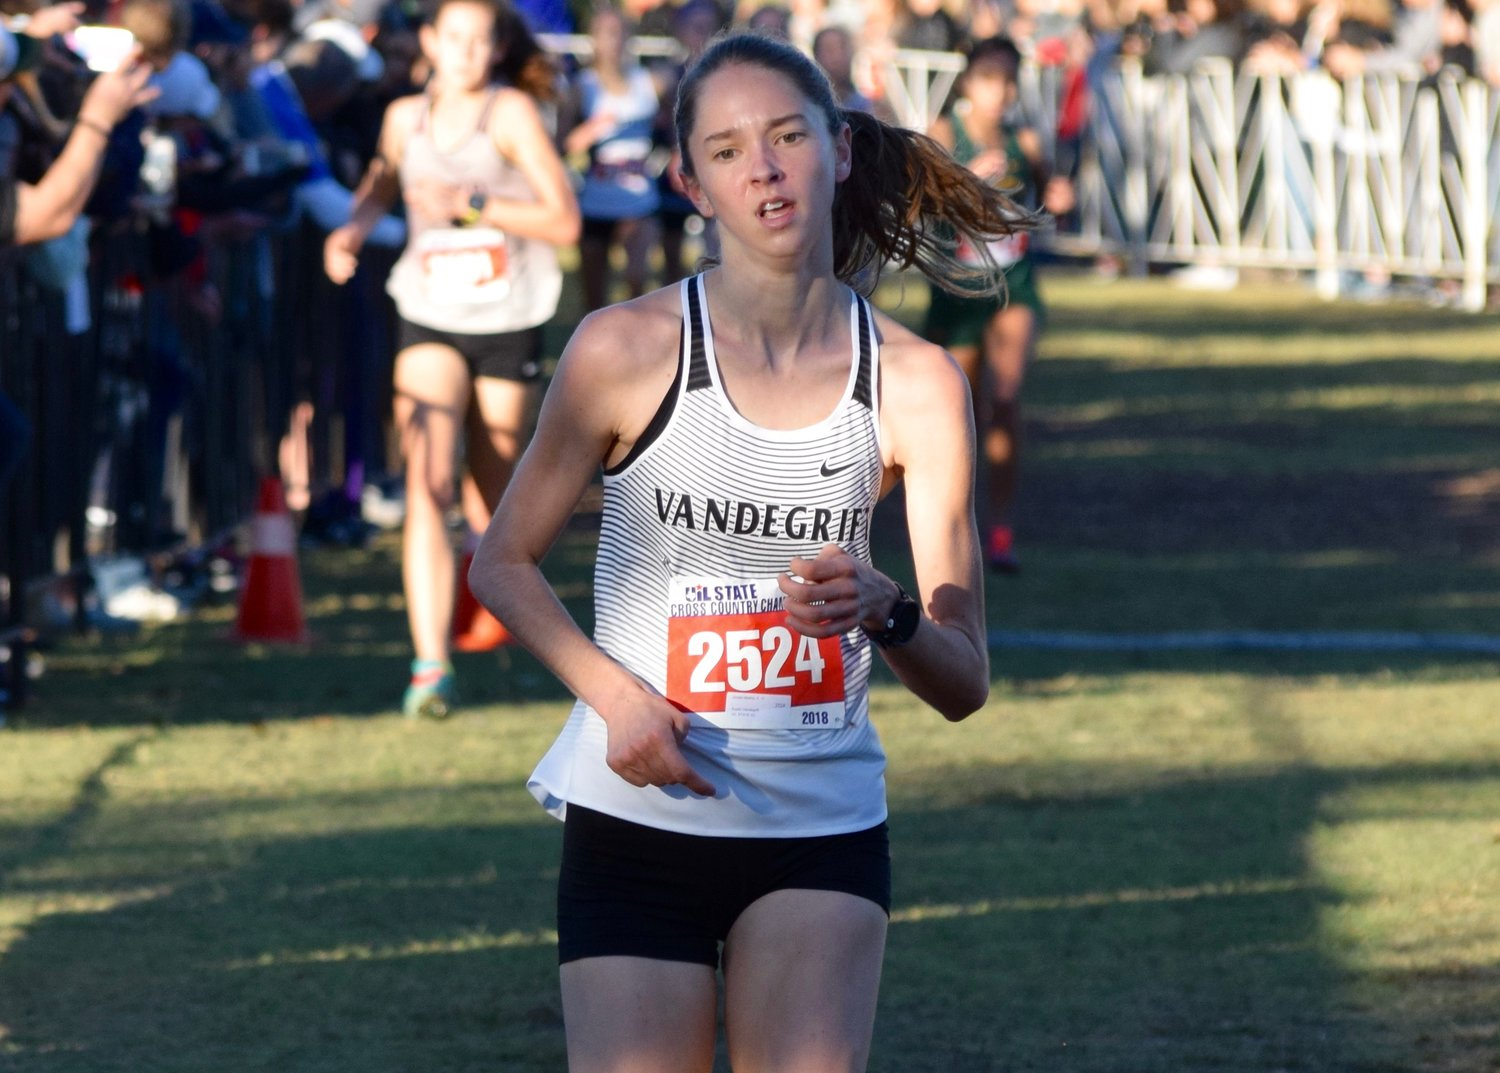 Vandegrift junior Jordan Mathis finished in eighth place with a time of 17:26.14 at the State Cross Country meet Saturday in Round Rock.